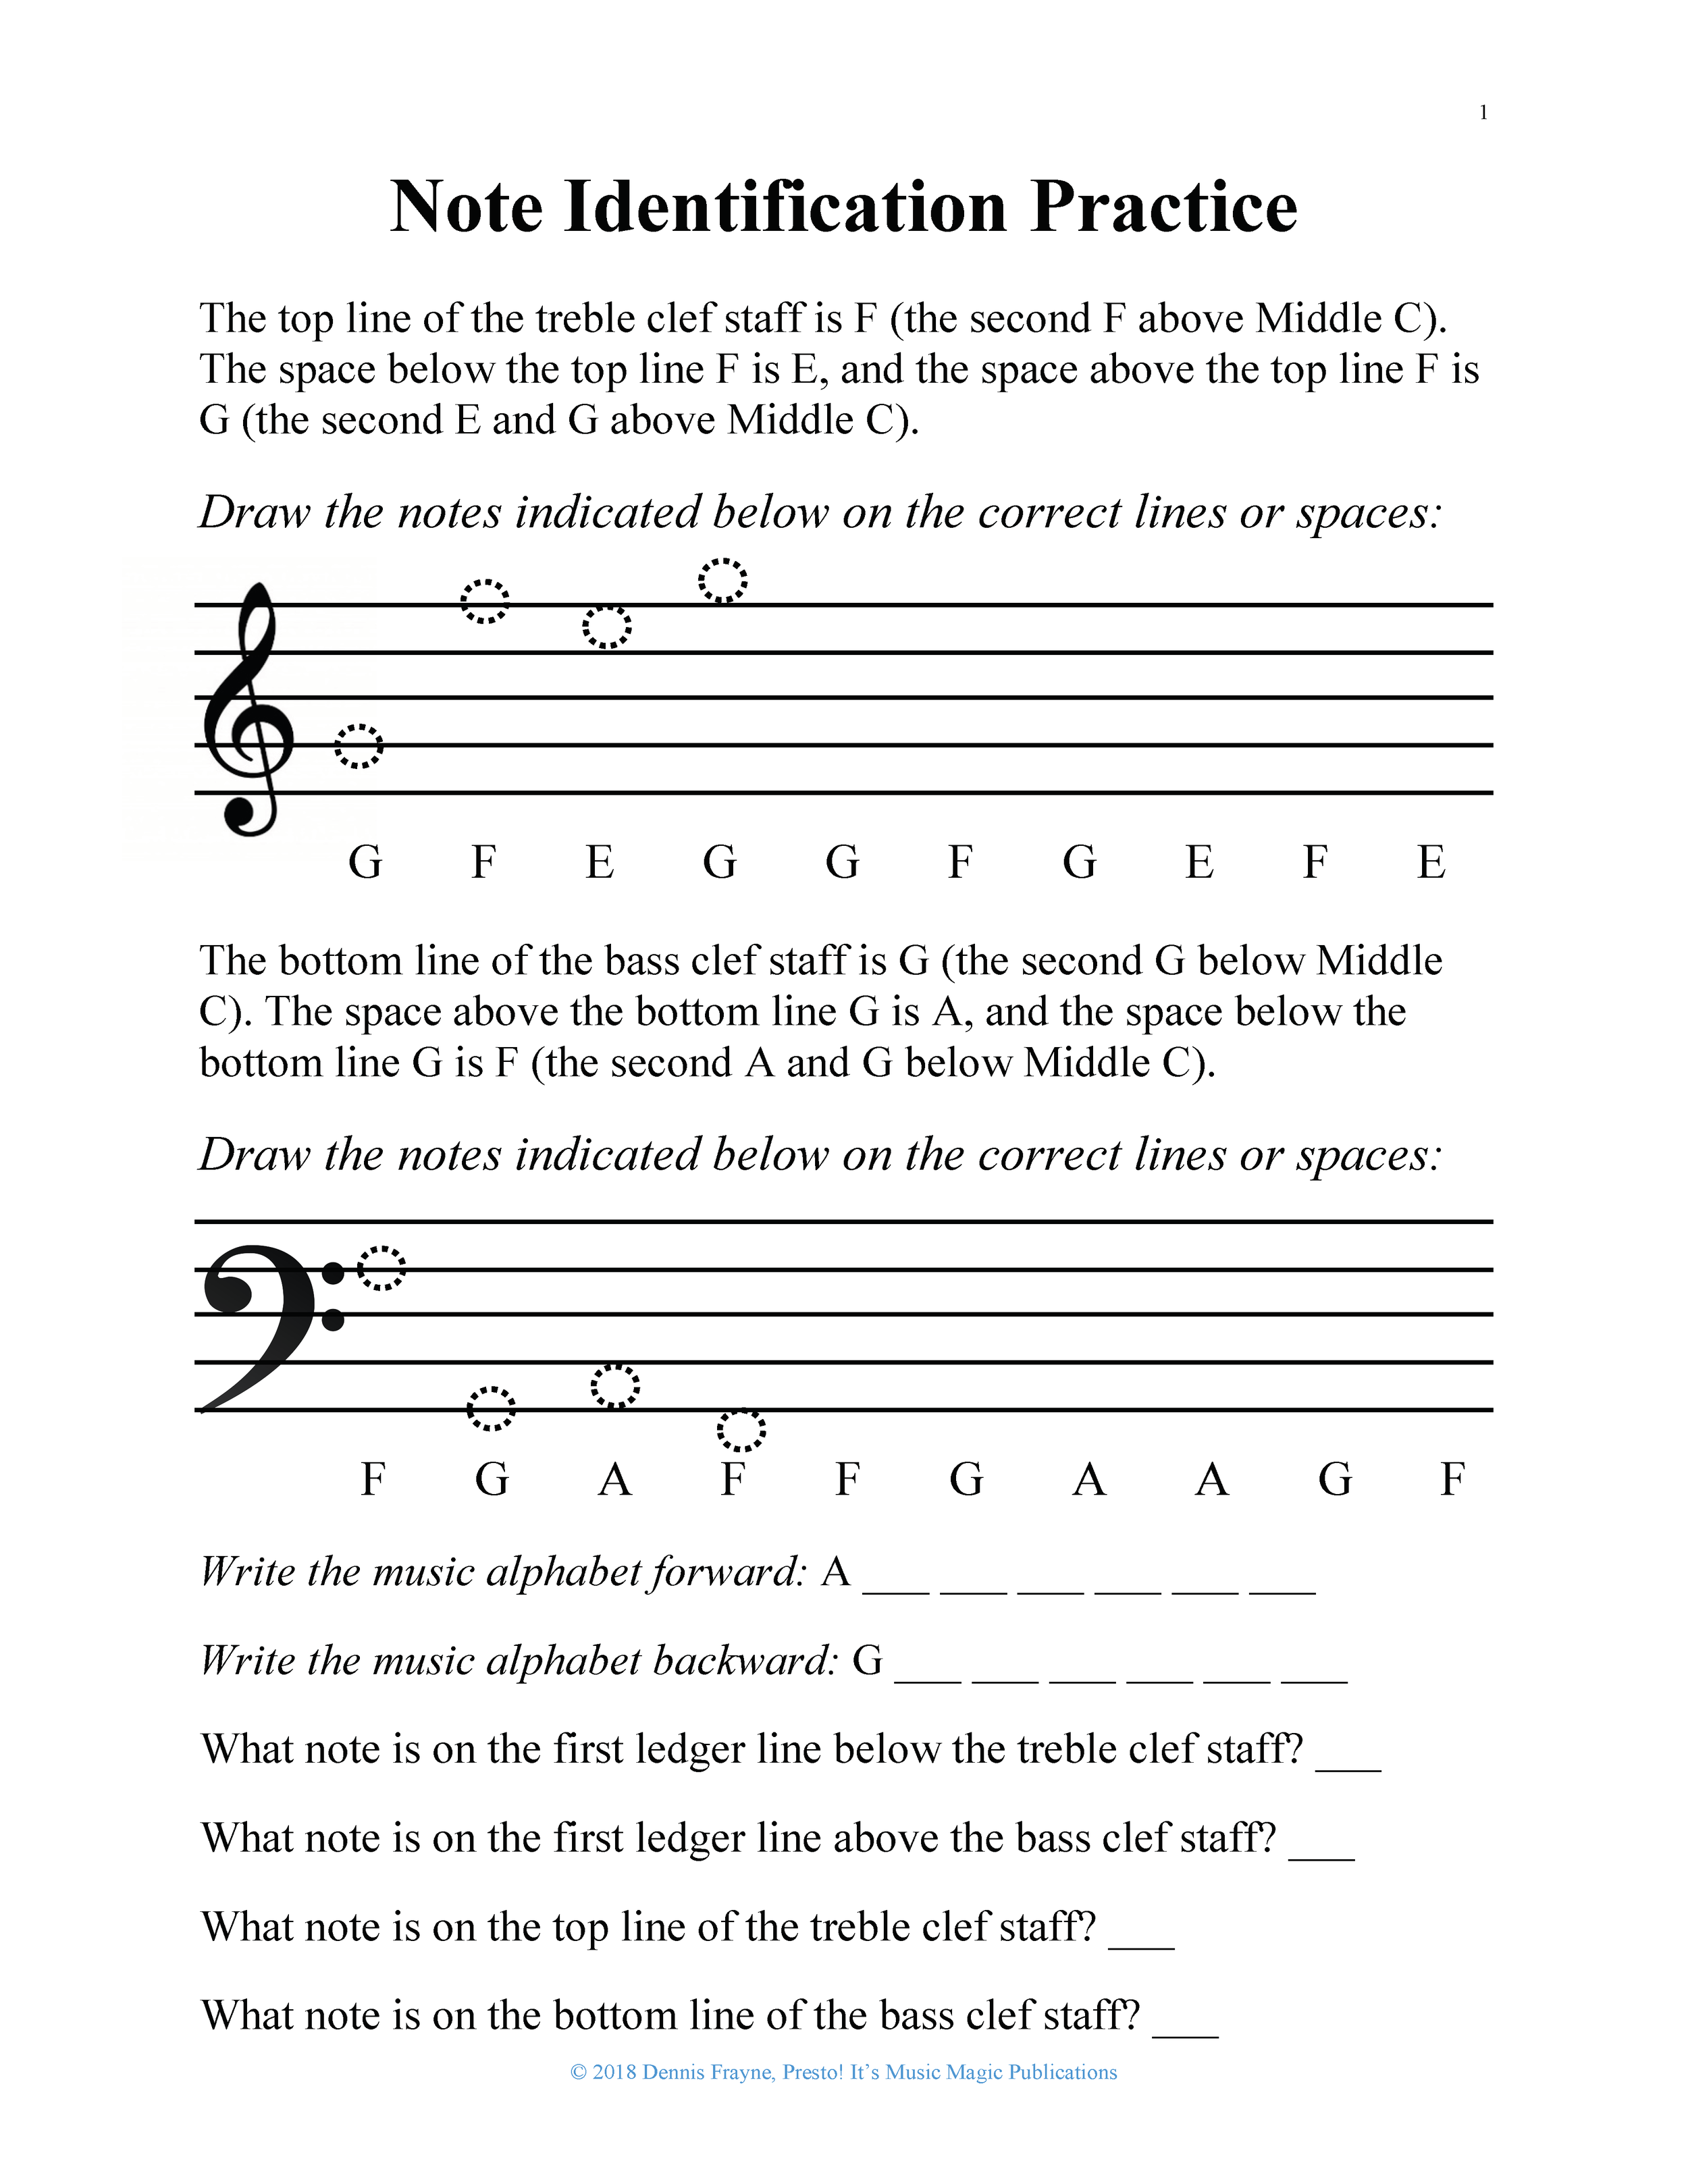 Grand Staff Note Identification Practice Worksheet, Level 0-2 3 pages